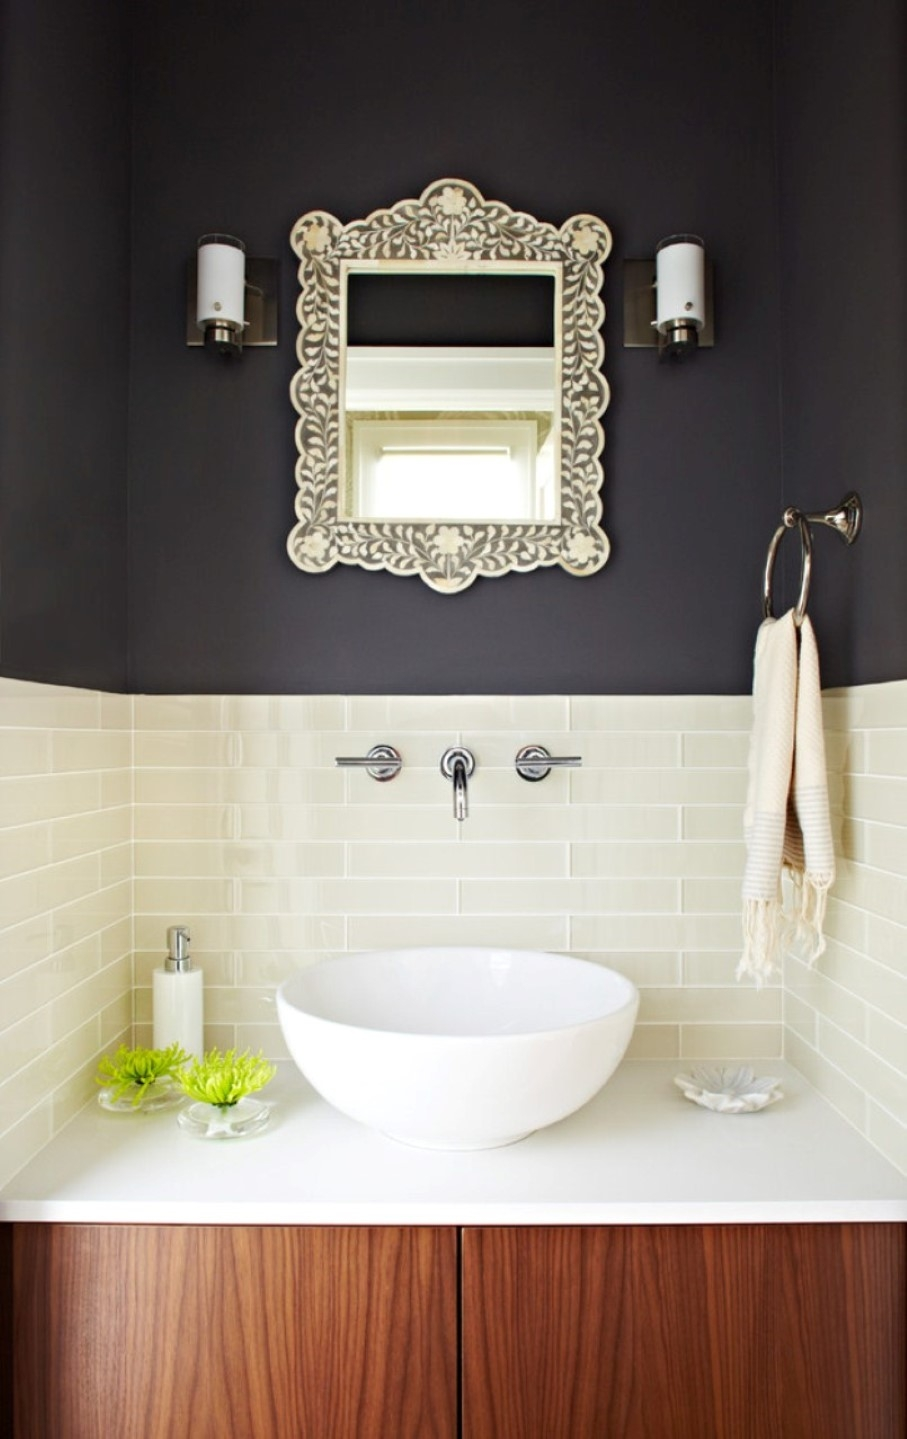 inspiring wall mount faucets in comely bathrooms designoursign regarding size 907 x 1439